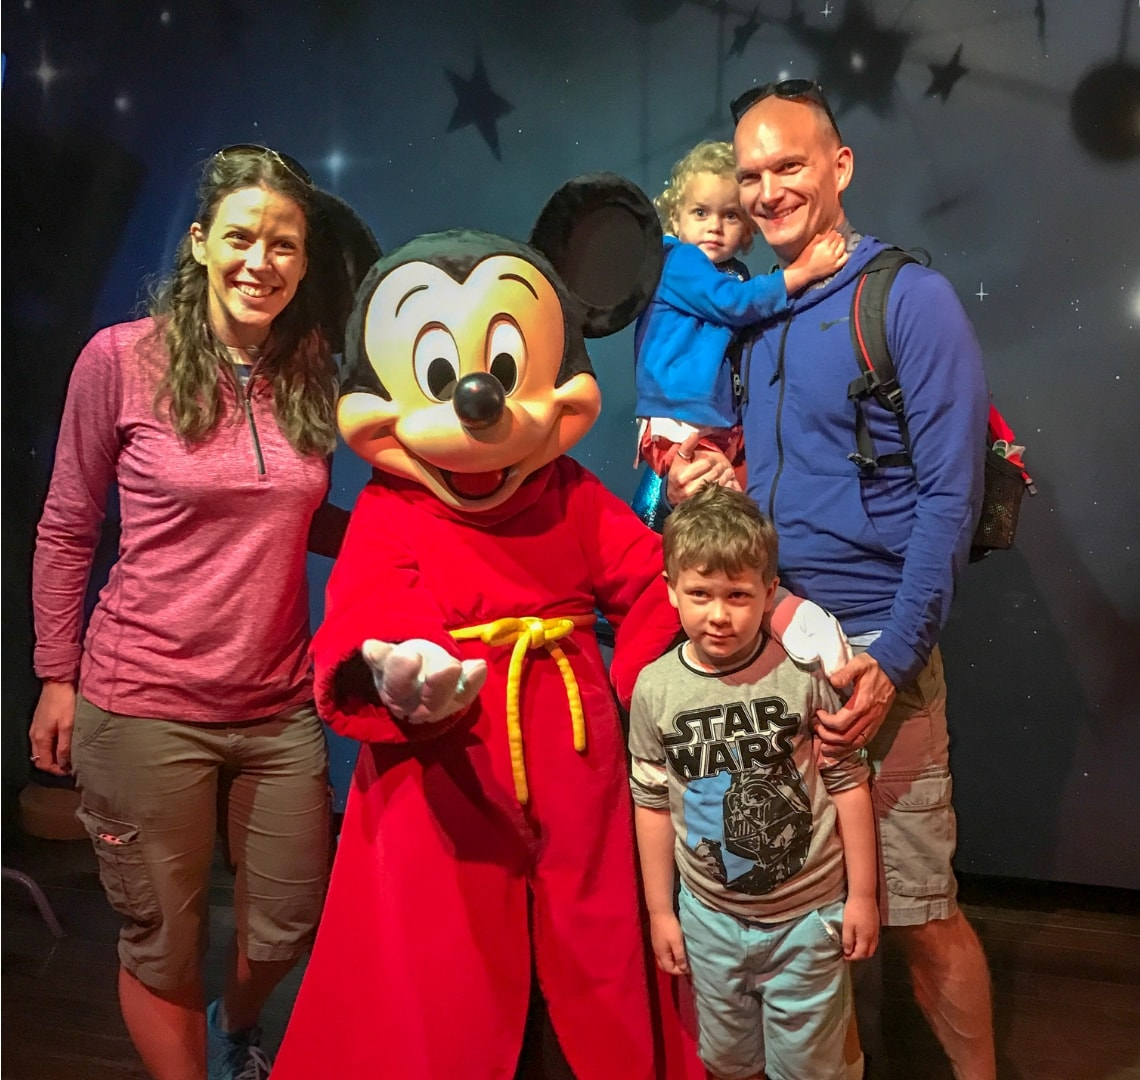 Disney - Wanderlust family with Micky Mouse (and the Things looking a little unsure!)